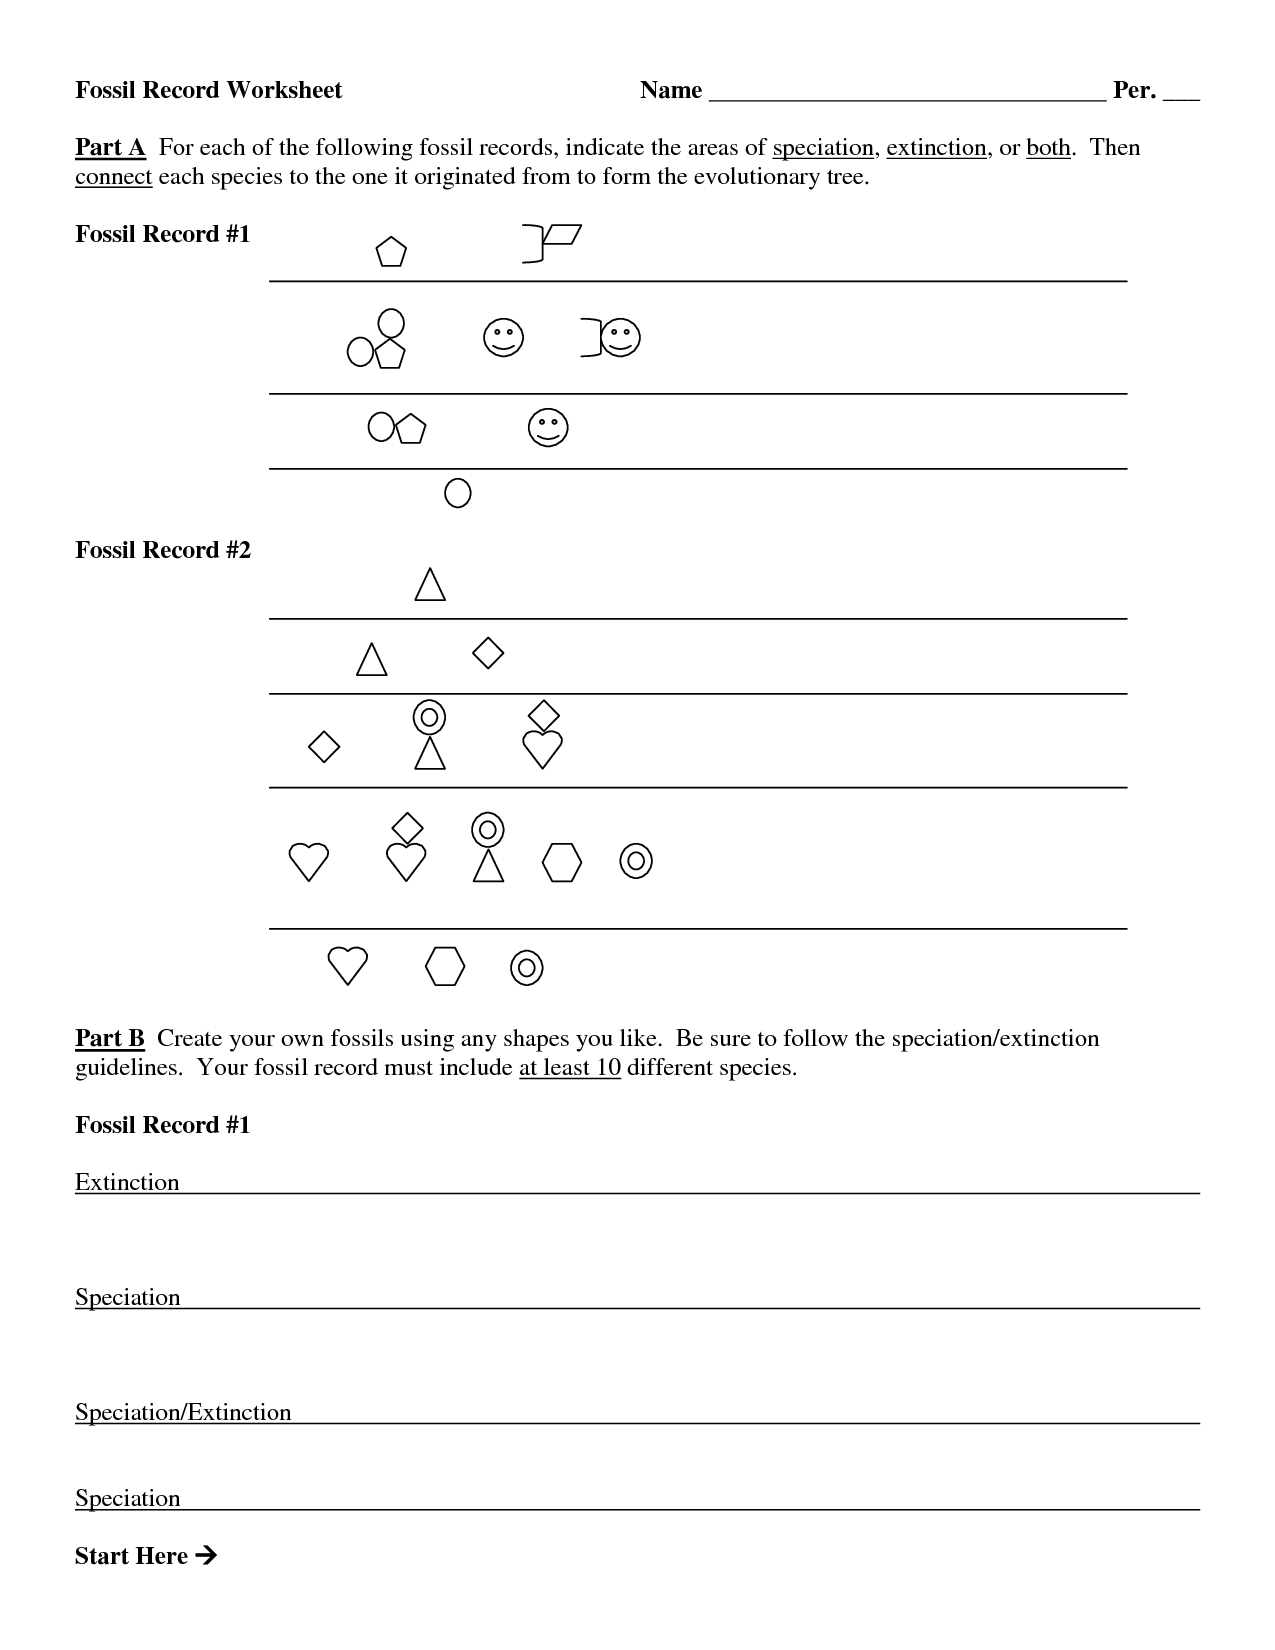 Dating The Fossil Record Worksheet Answers